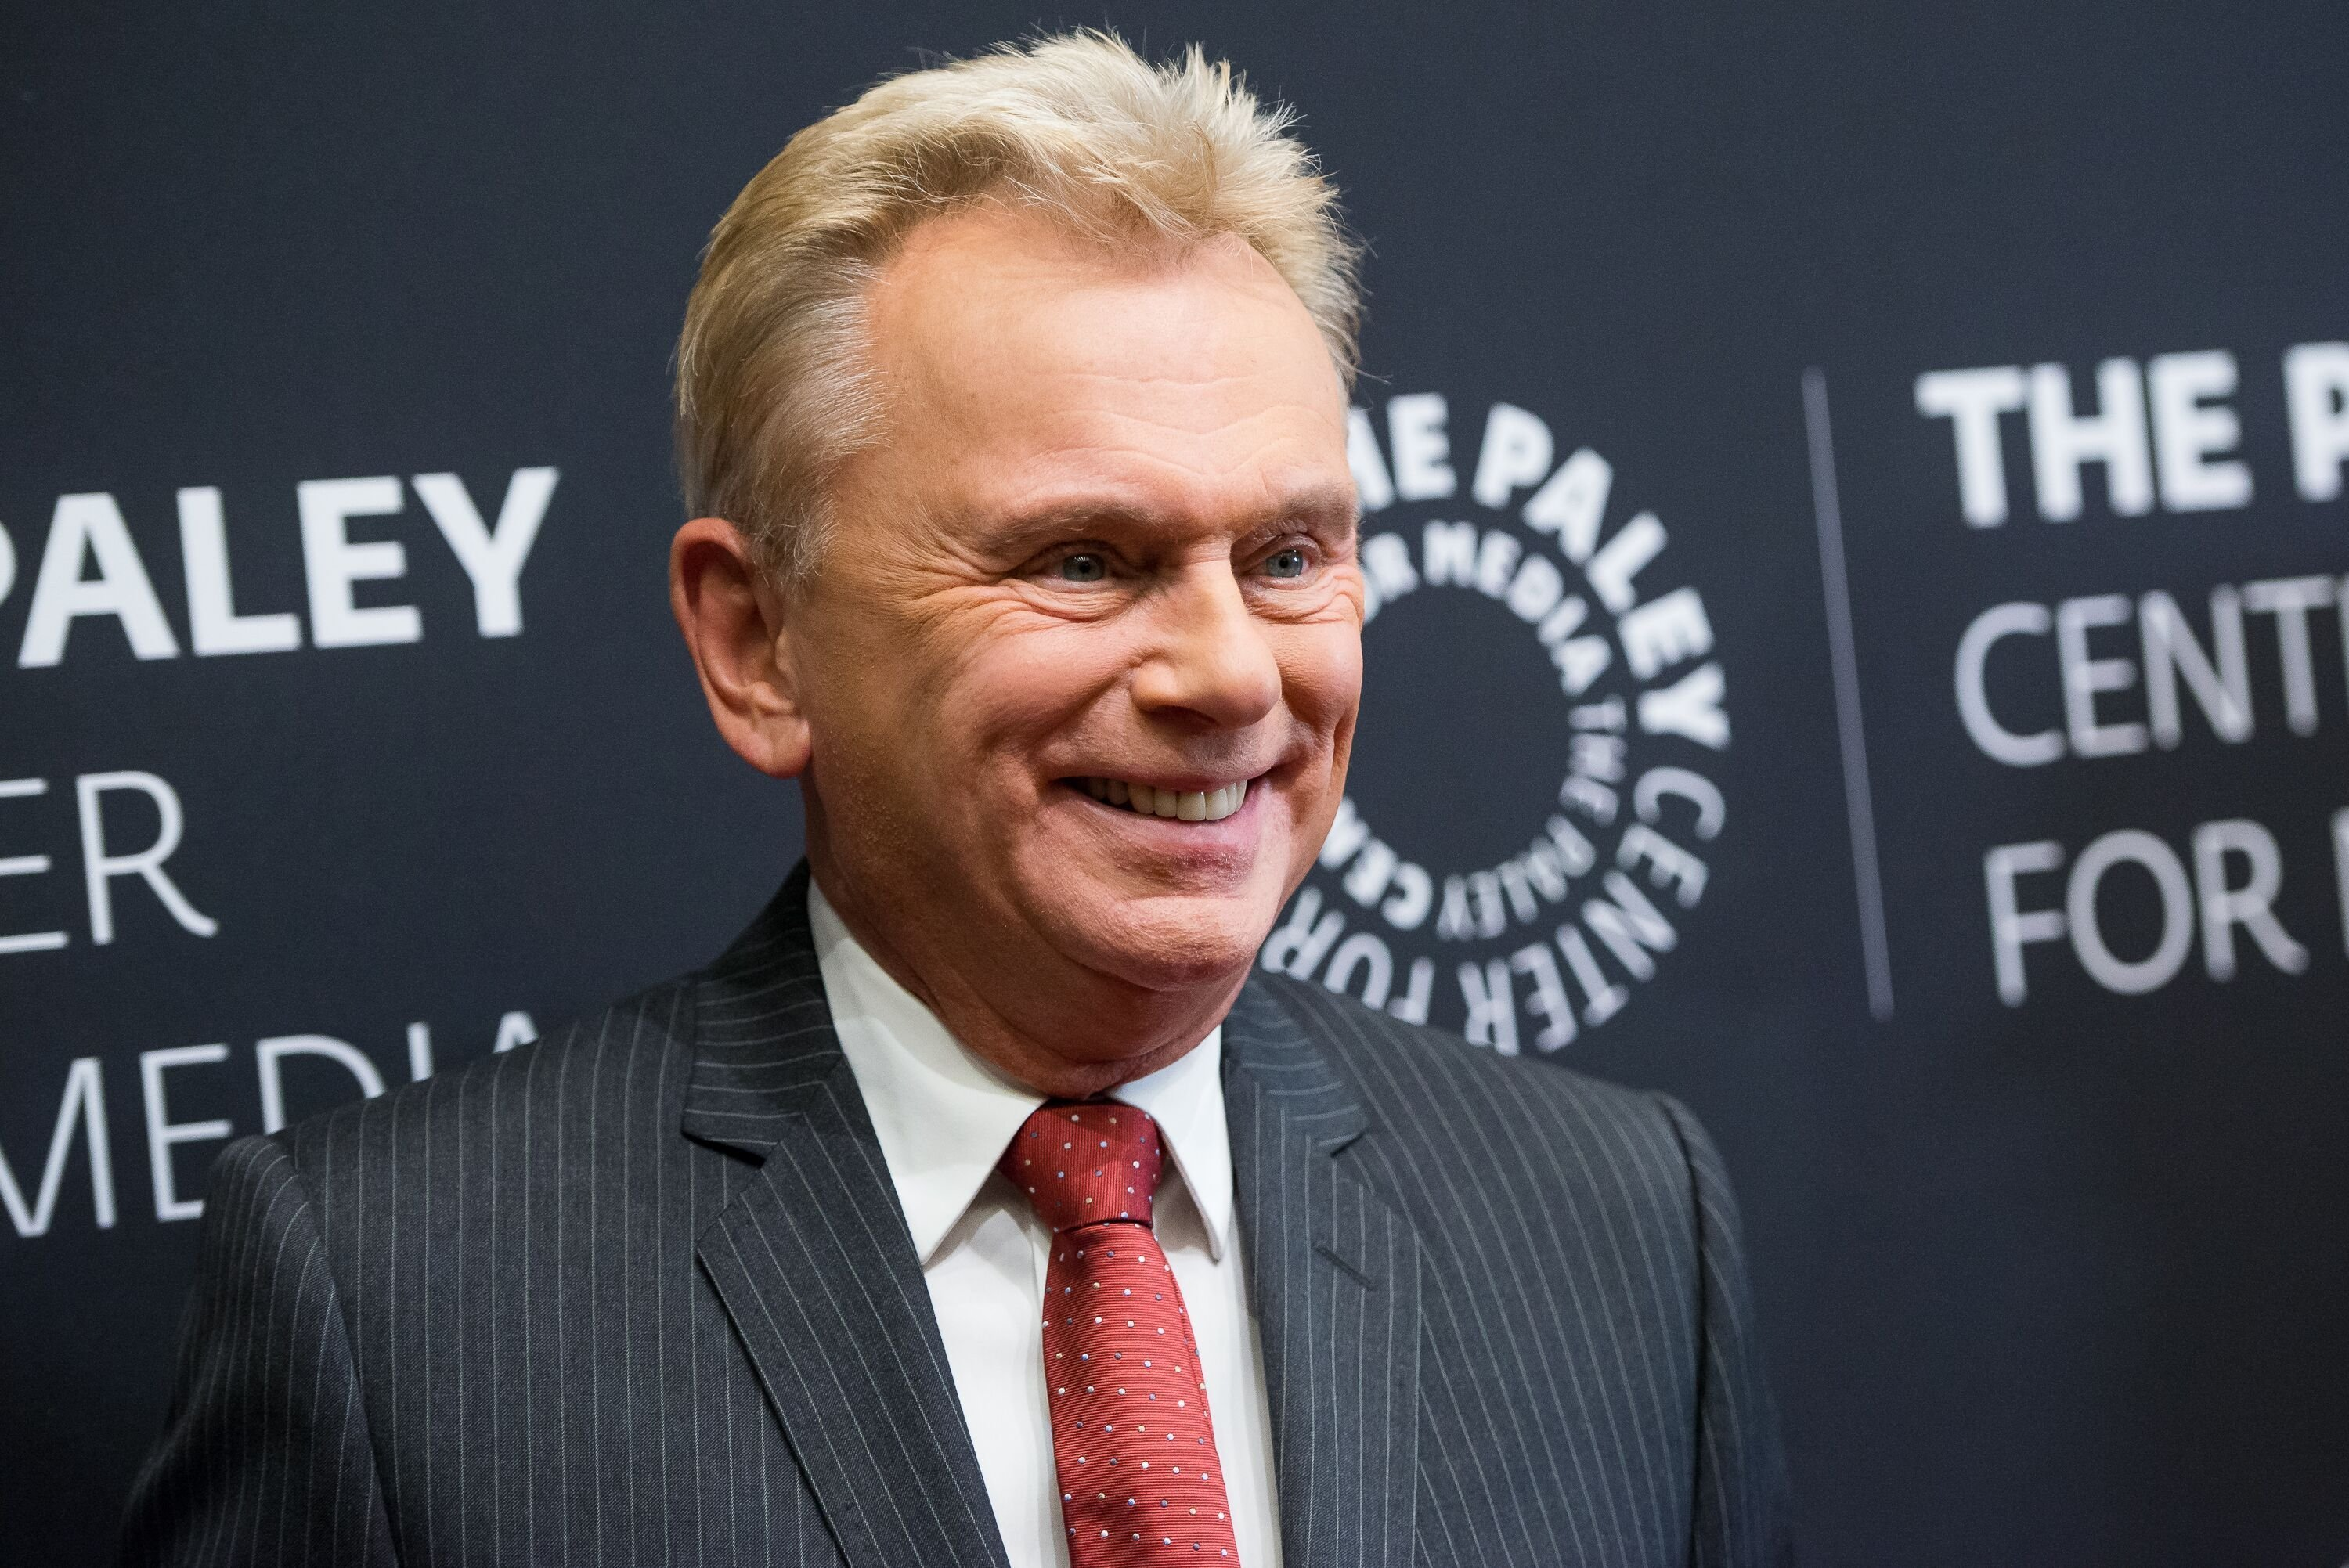 Pat Sajak at The Paley Center For Media Presents Wheel Of Fortune 35 Years As America's Game on November 15, 2017, in New York City | Photo: Getty Images